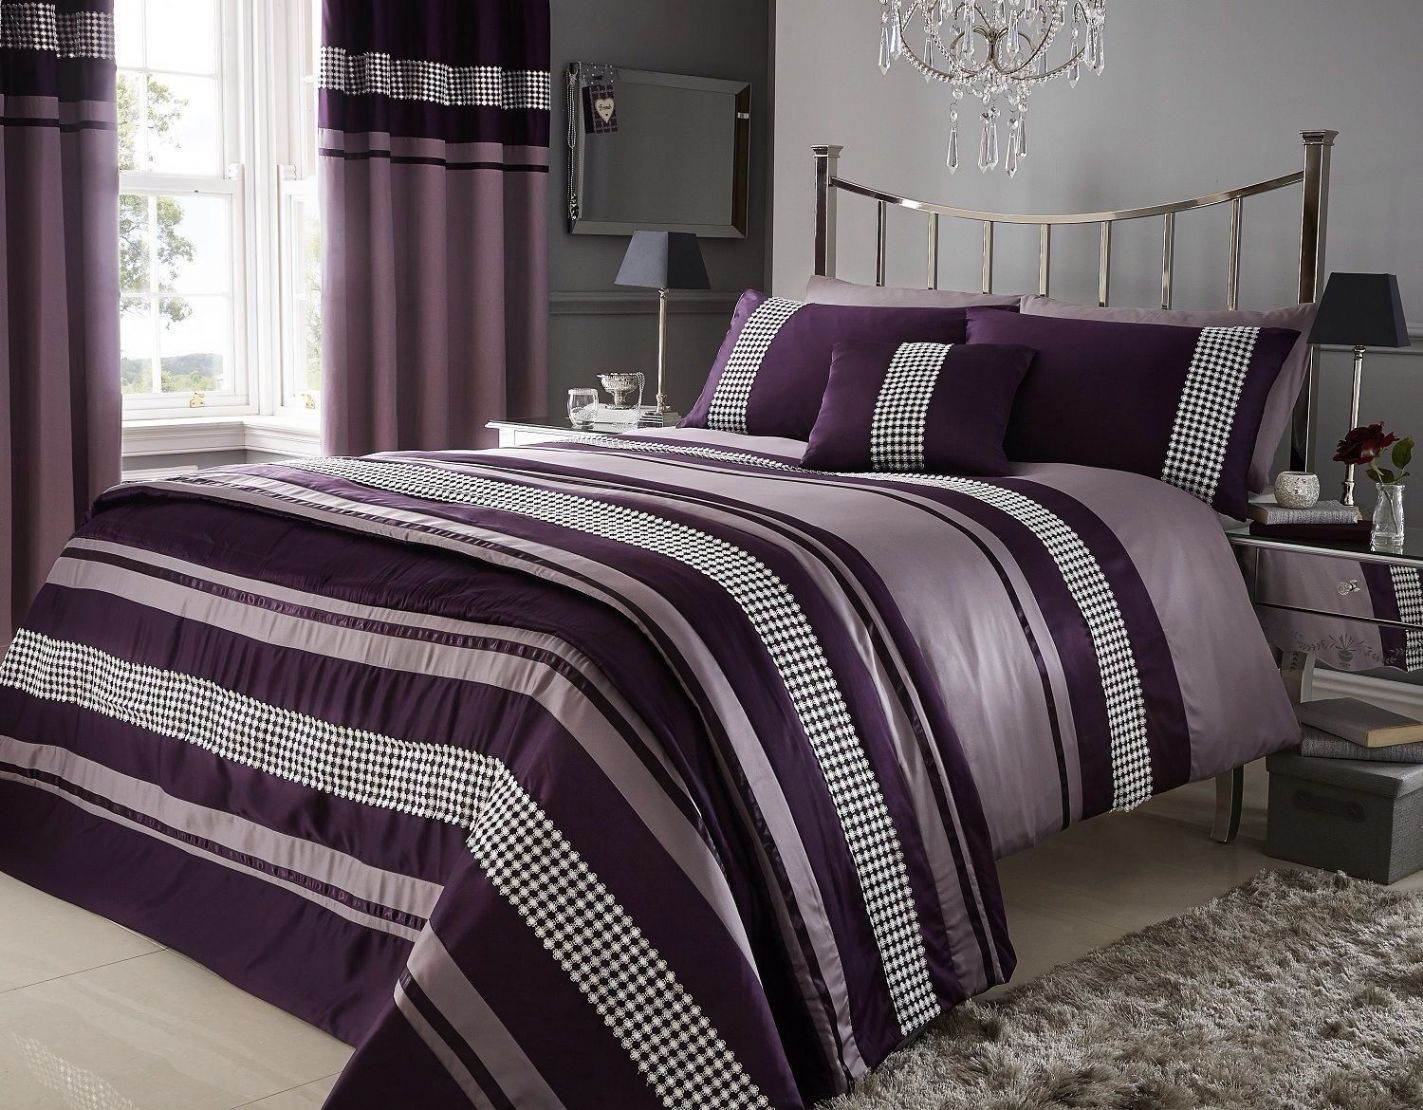 Cozy Purple Duvet Cover For Modern Bedroom Design Ideas Purple Impressive Purple And Silver Bedroom Designs Review